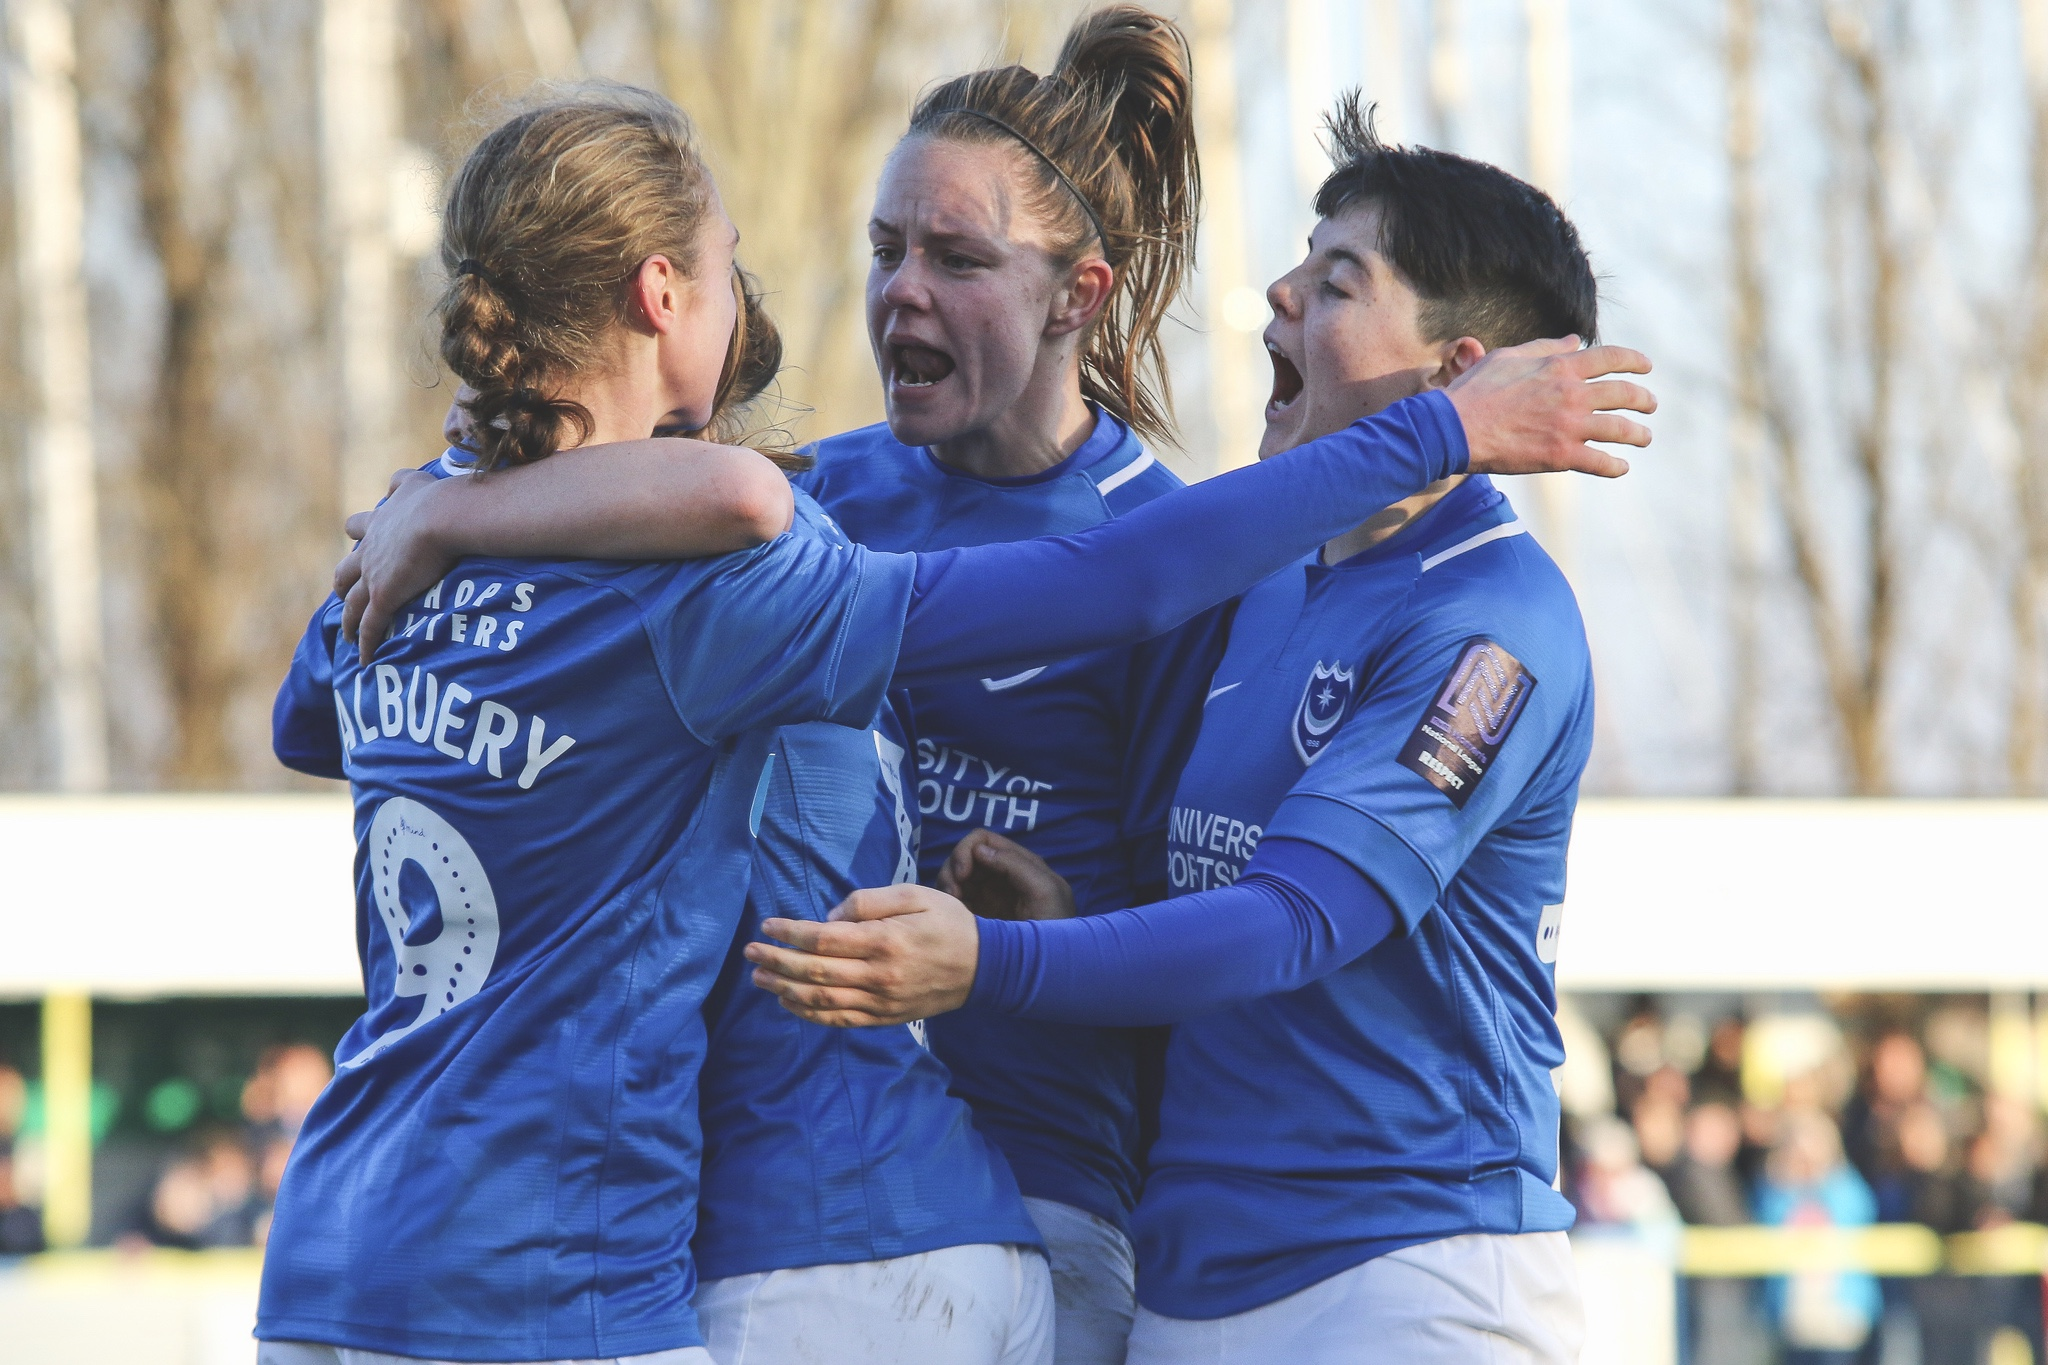 Katie James and the Portsmouth FC Women celebrating. Taken by Jordan Hampton.